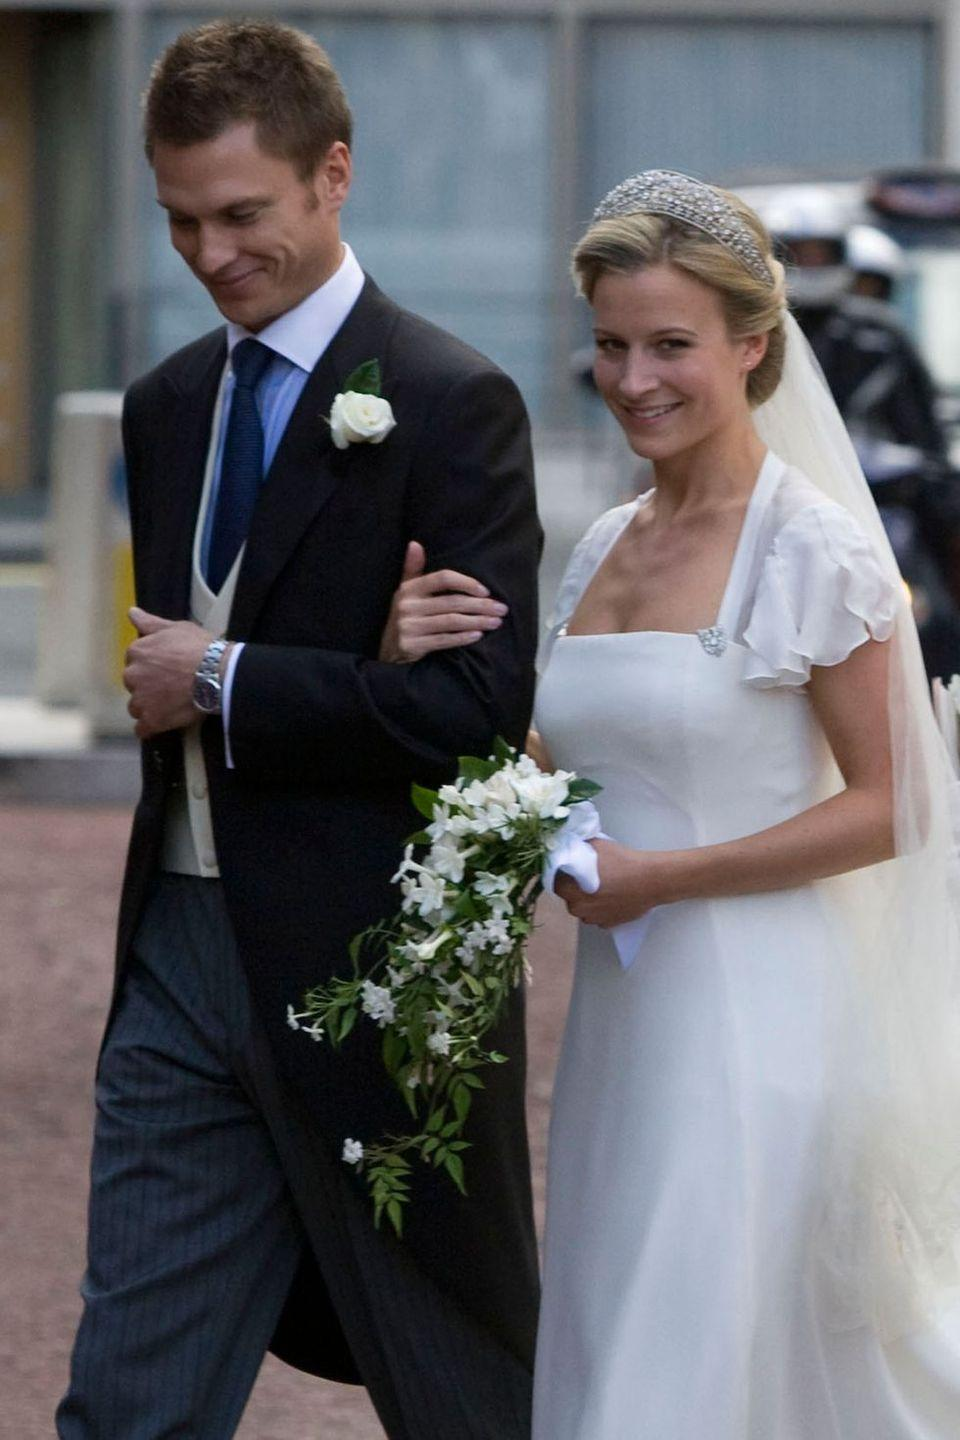 "<p><strong>Wedding date: </strong> July 19, 2008</p><p><strong>Wedding tiara: </strong>Lady Rose wore the Iveagh Tiara on her wedding day. The tiara <a href=""http://orderofsplendor.blogspot.com/2015/10/tiara-thursday-iveagh-tiara.html"" rel=""nofollow noopener"" target=""_blank"" data-ylk=""slk:was given to Queen Mary"" class=""link rapid-noclick-resp"">was given to Queen Mary</a> as a wedding gift from Lord and Lady Iveagh, also known as Edward and Adelaide Guinness, and it was eventually passed on to Lady Rose's mother, Birgitte, Duchess of Gloucester. </p>"